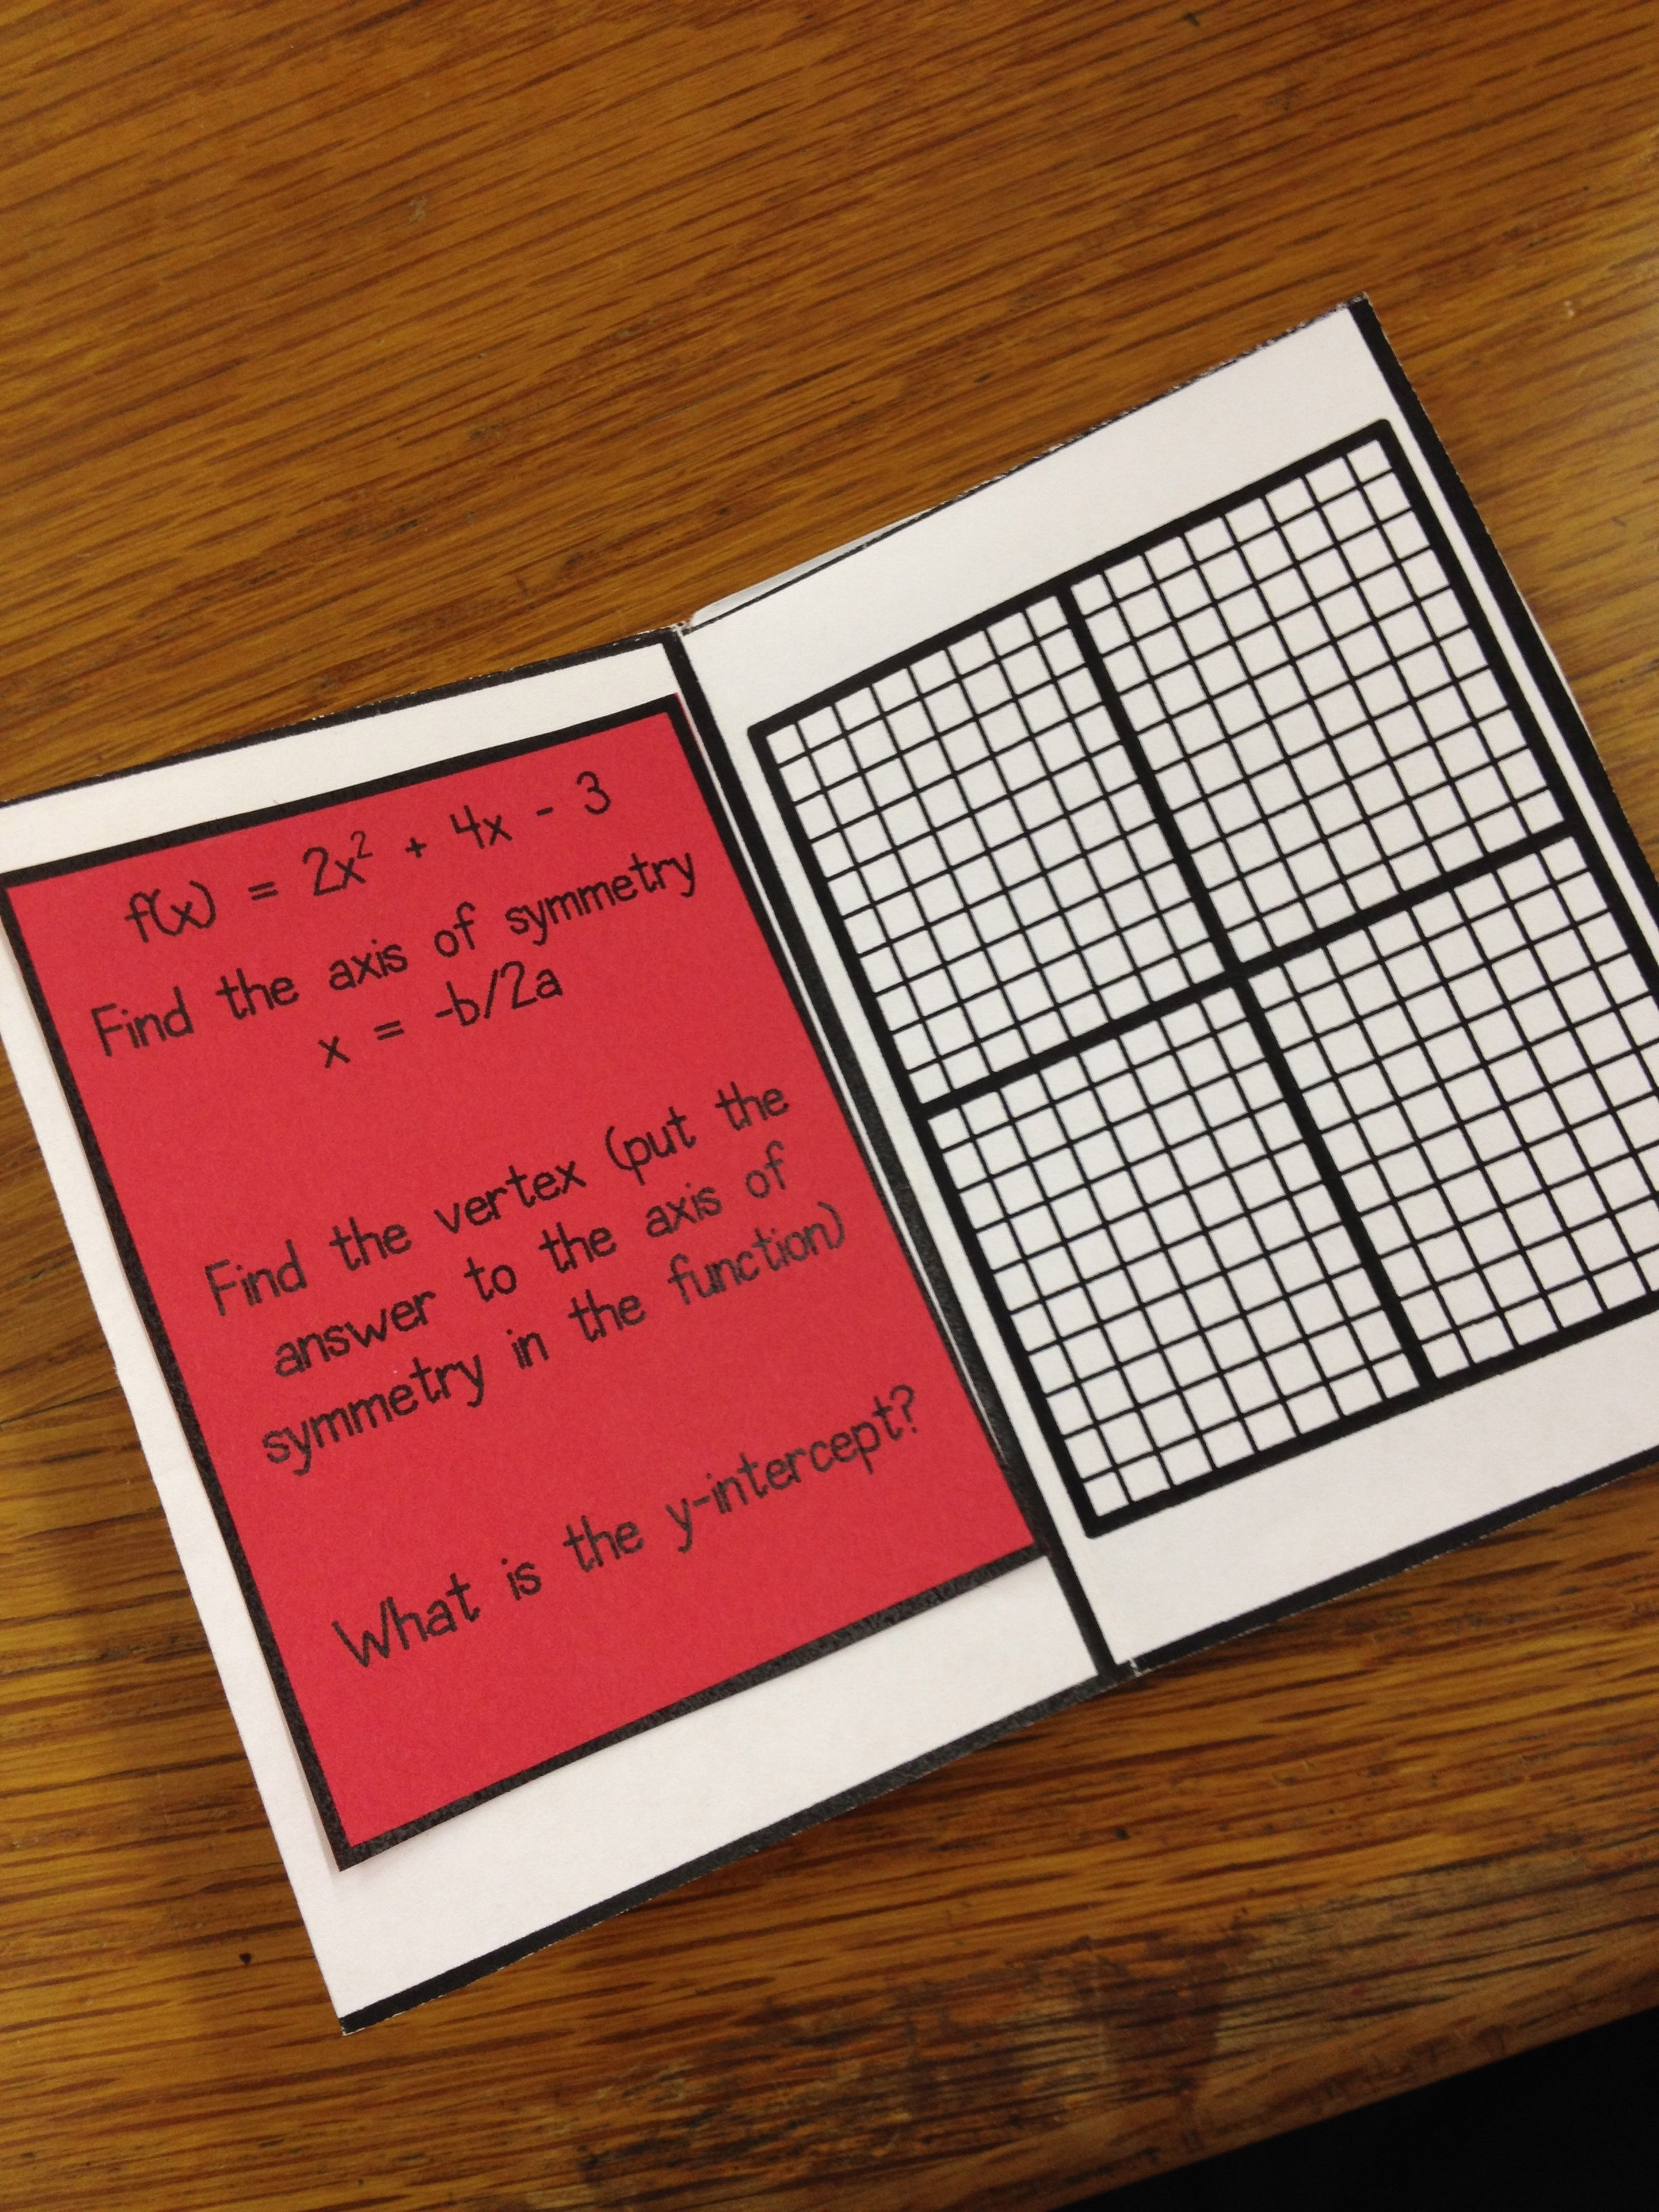 Quadratic Equations Mini Book Free From Andrea Of For The Love Of Teaching Math